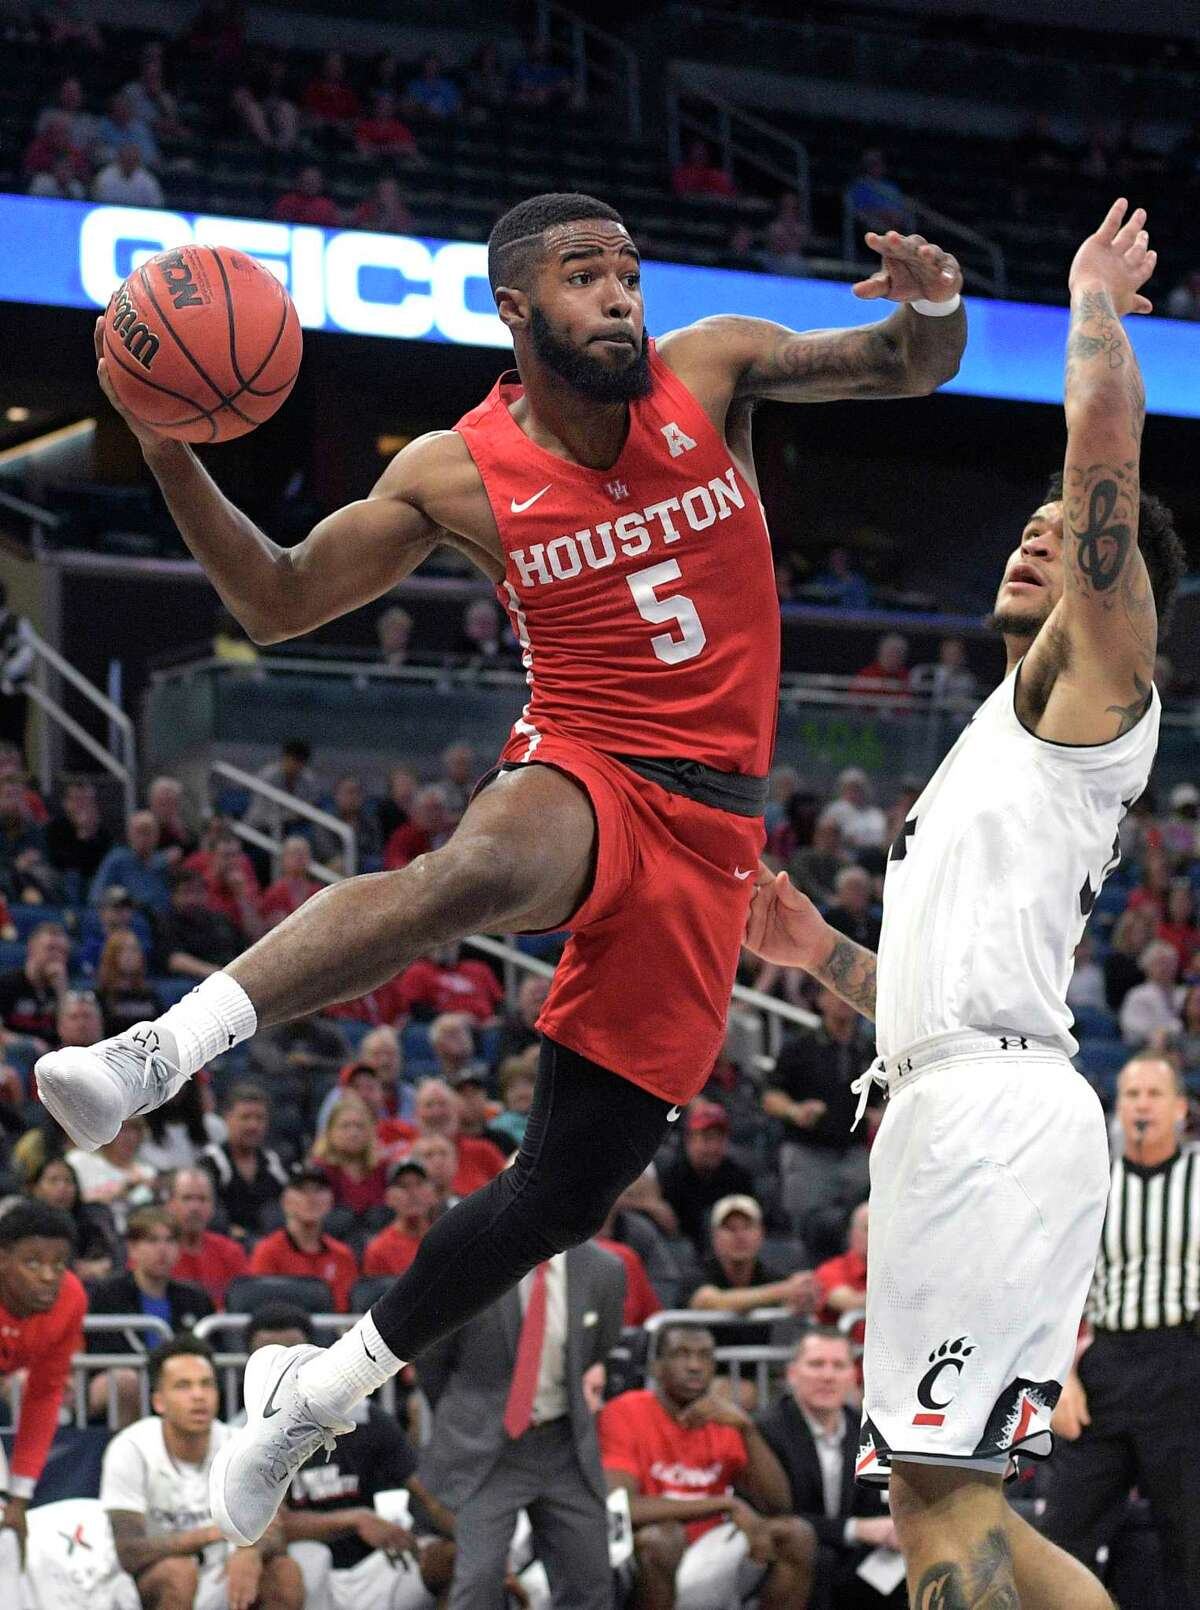 Houston guard Corey Davis Jr. (5) passes the ball in front of Cincinnati guard Jarron Cumberland, right, during the first half of an NCAA college basketball championship game at the American Athletic Conference tournament Sunday, March 11, 2018, in Orlando, Fla. (AP Photo/Phelan M. Ebenhack)